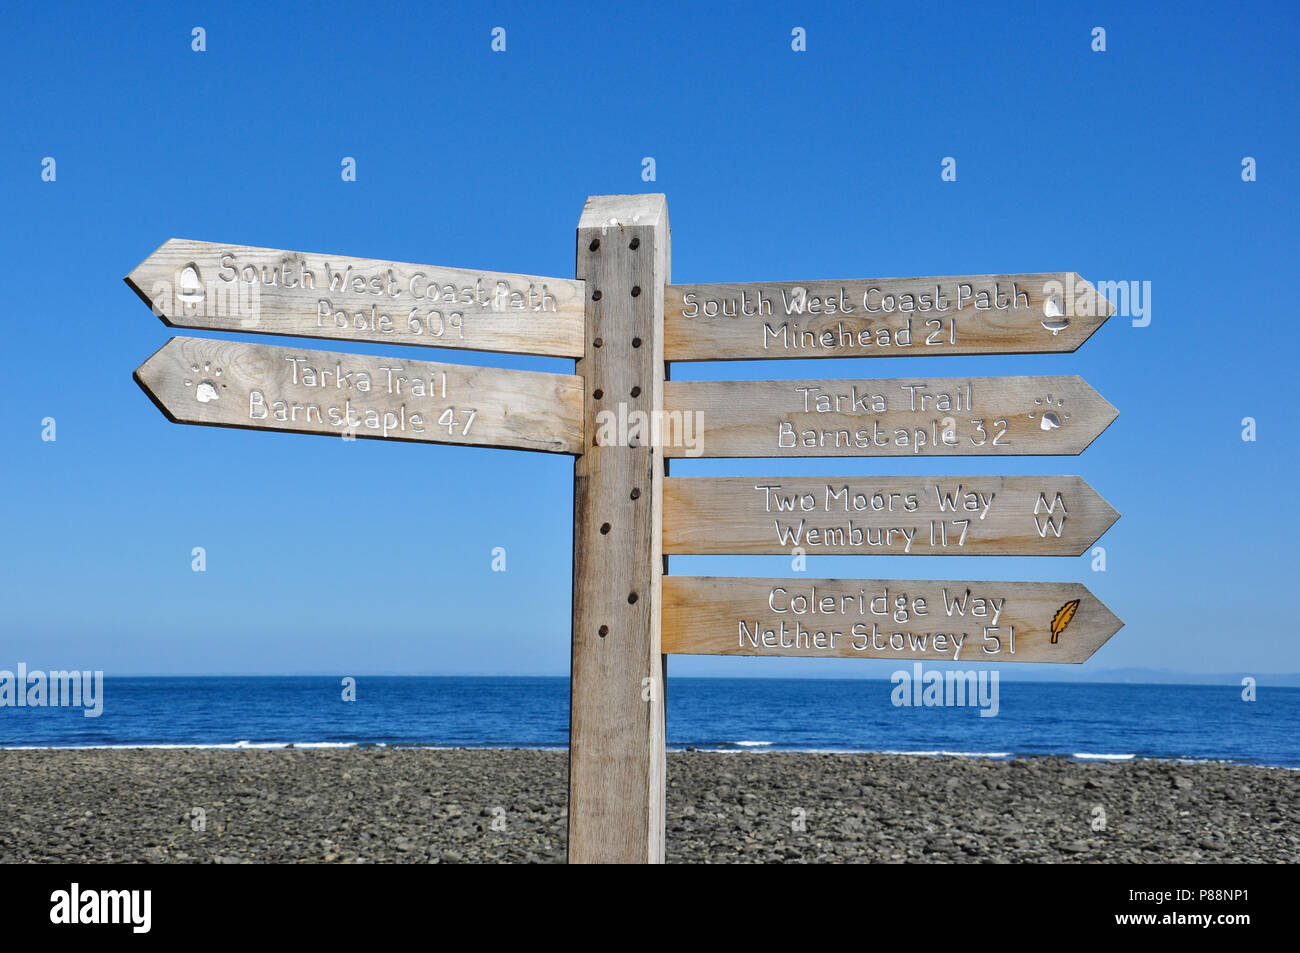 Signpost for footpath routes, Lynmouth, North Devon, England, UK - Stock Image